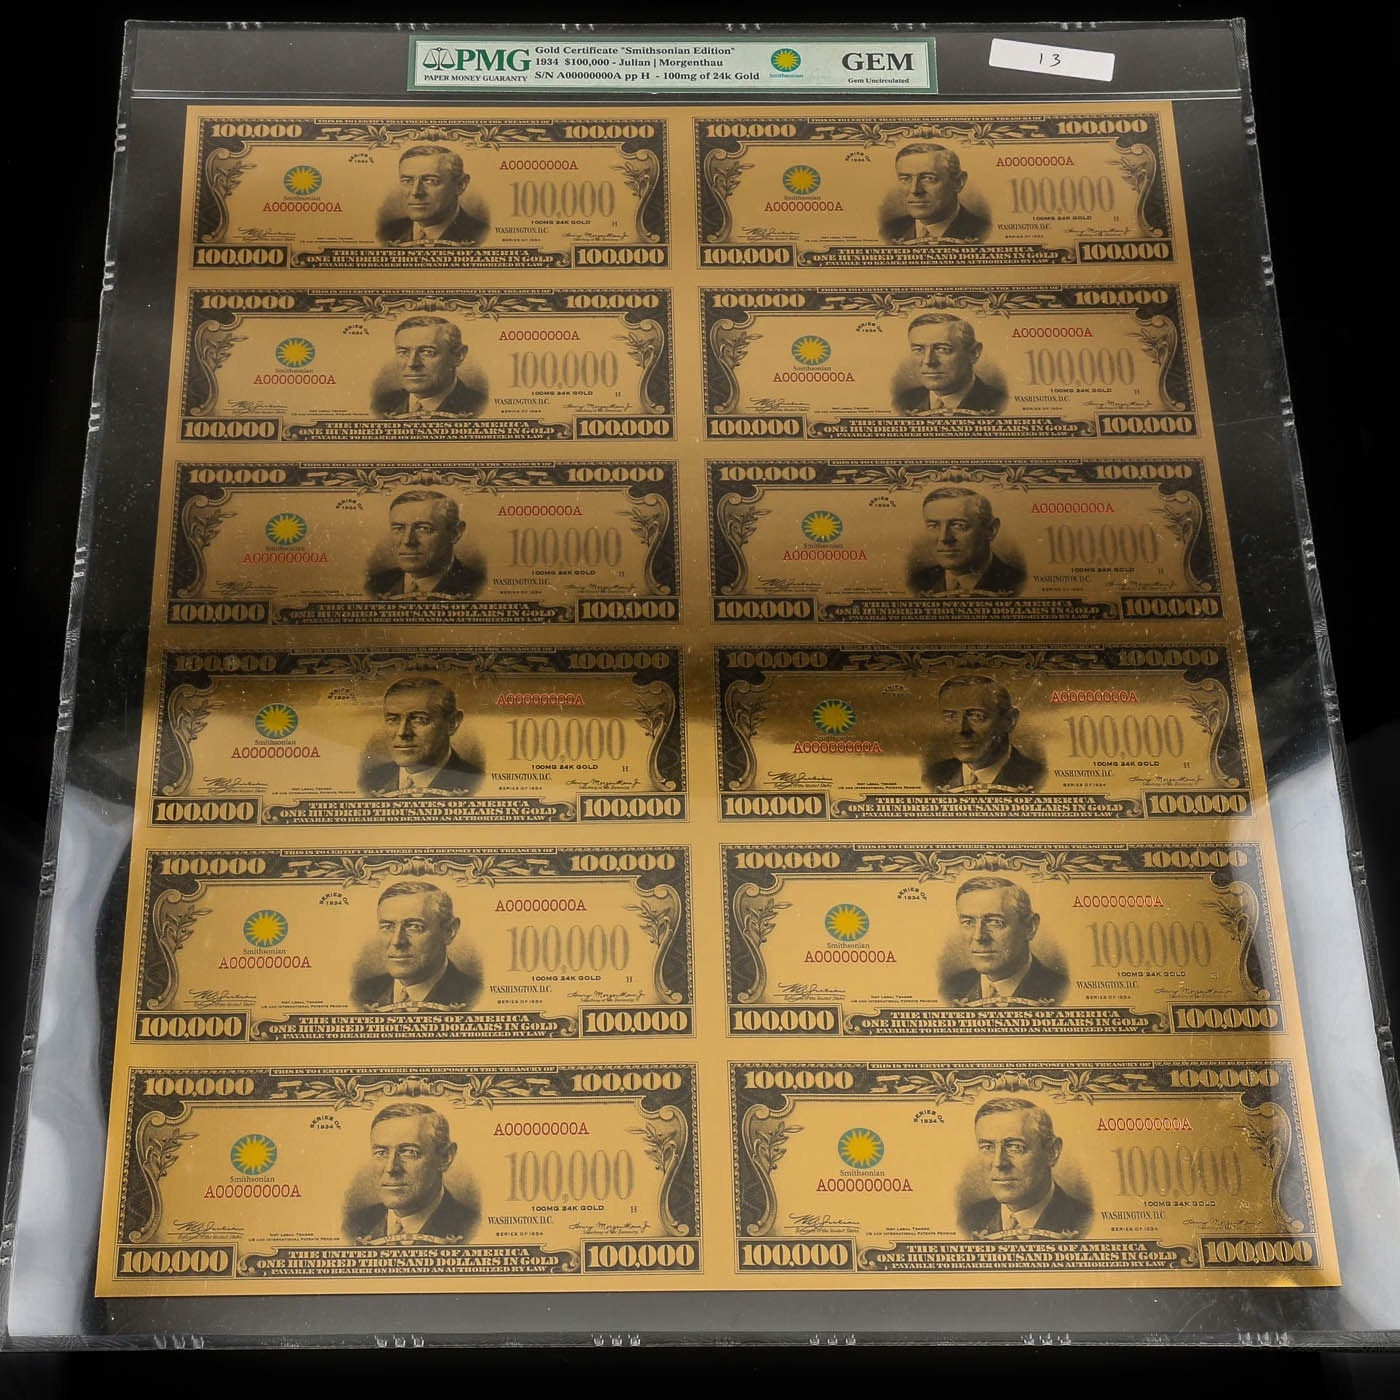 """Group of 12 Uncut PMG Graded """"Smithsonian Edition"""" 1934 Julian/Morgenthau Notes"""